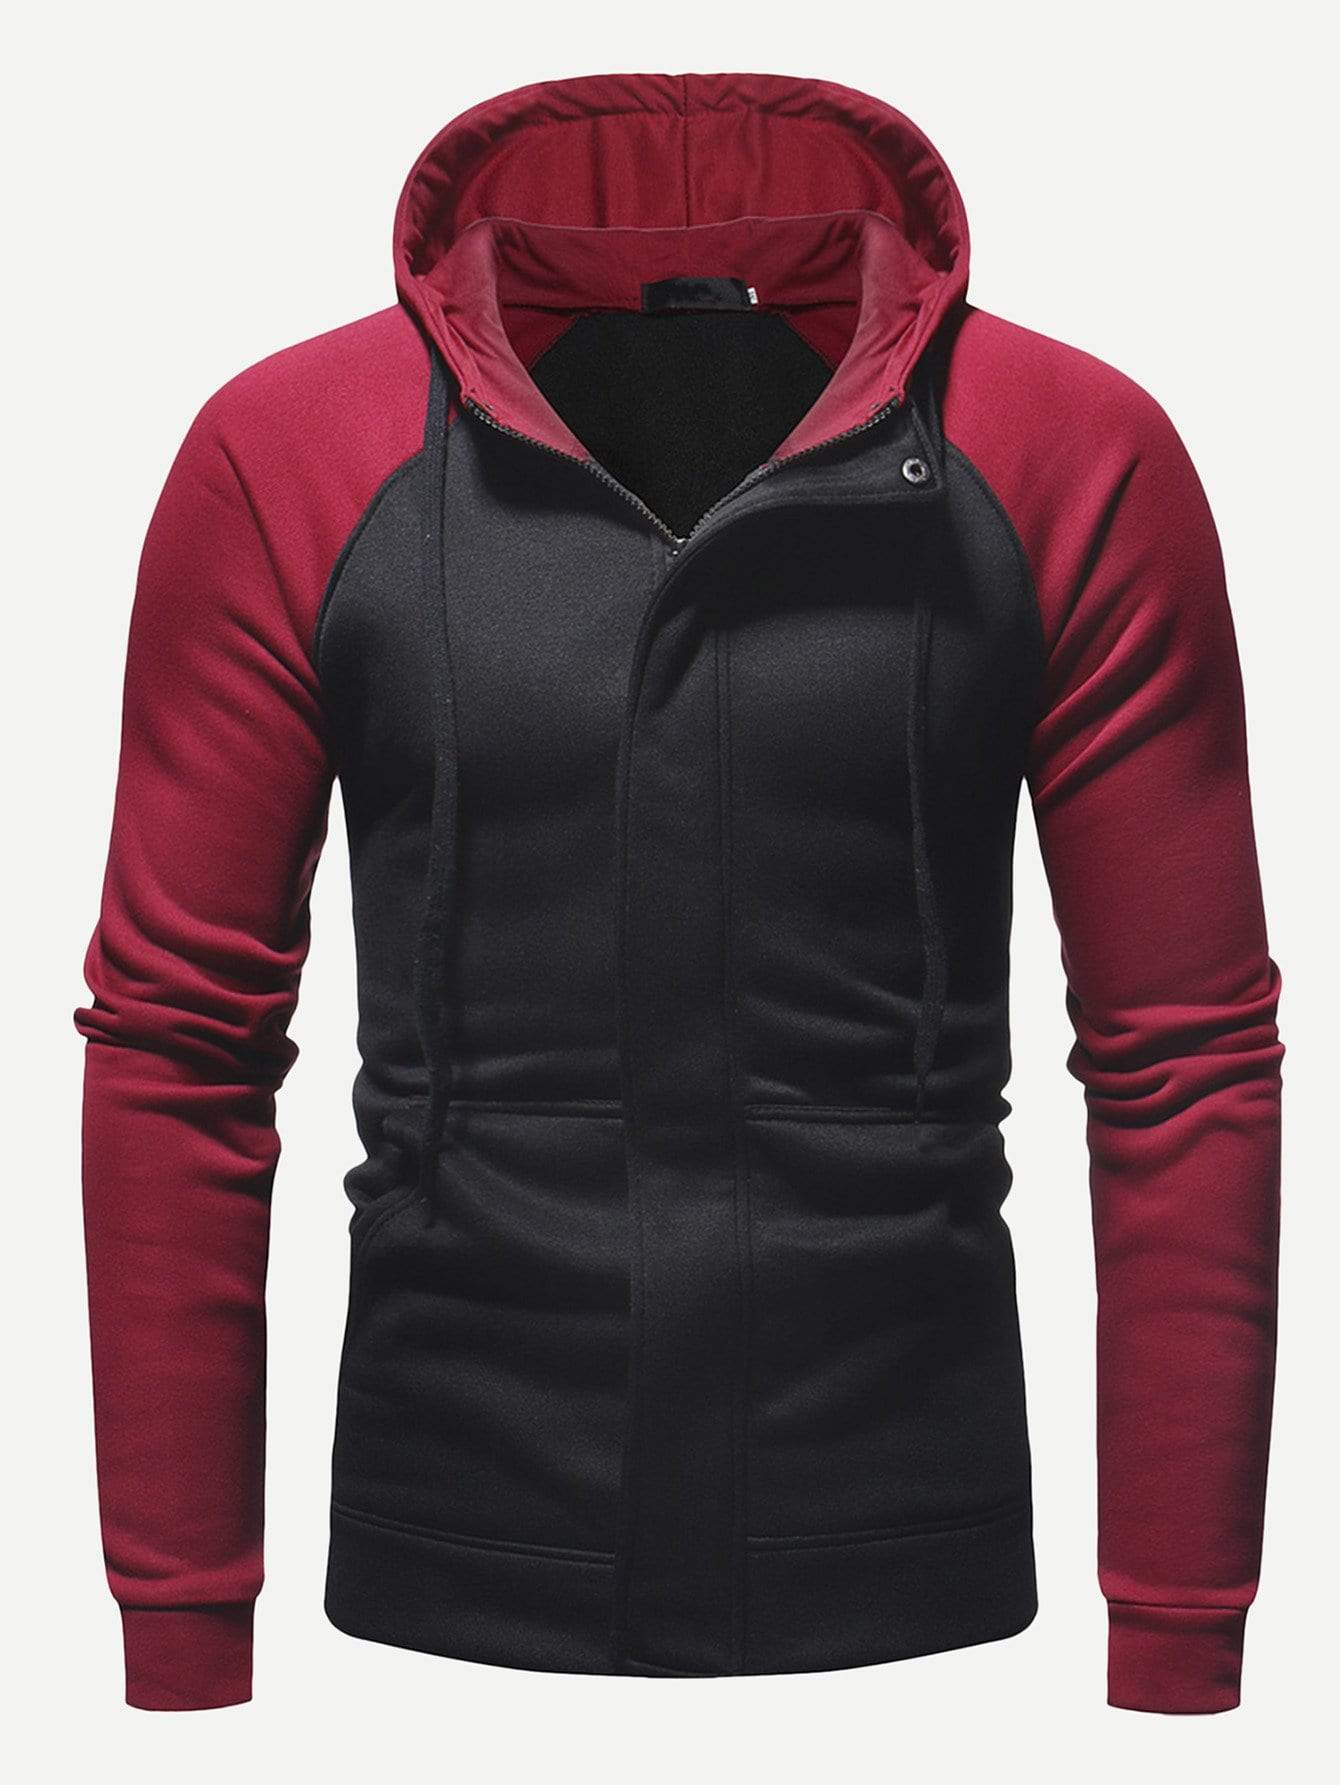 1180c75980d9 Men Color Block Raglan Sleeve Zip Up Hoodie in 2019 | Products ...